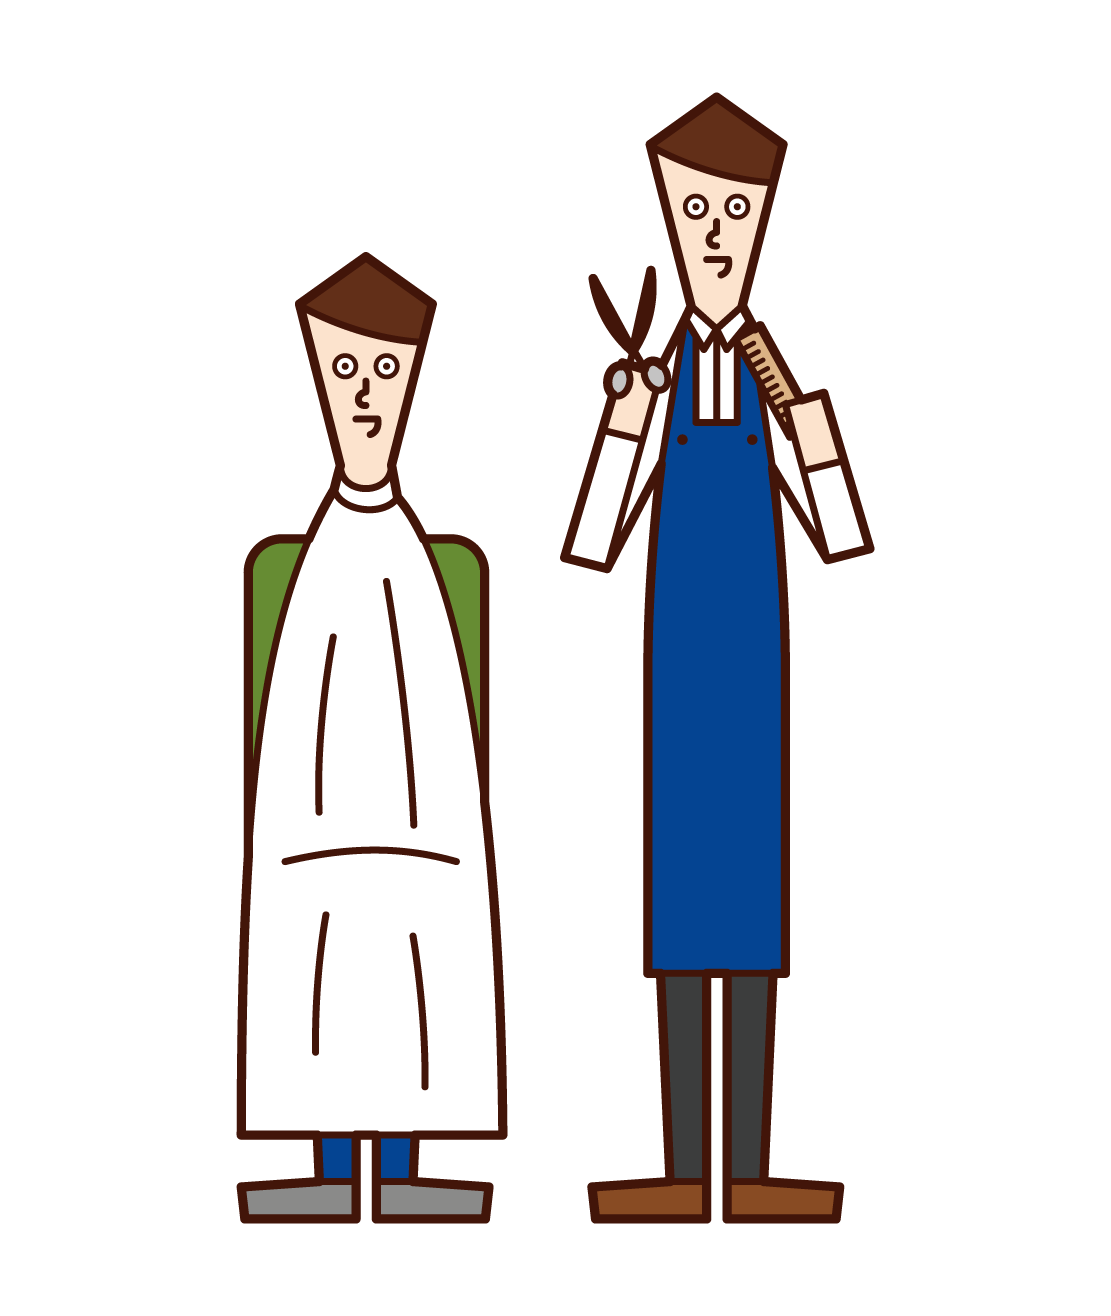 Illustration of a hairdresser (man) who cuts hair